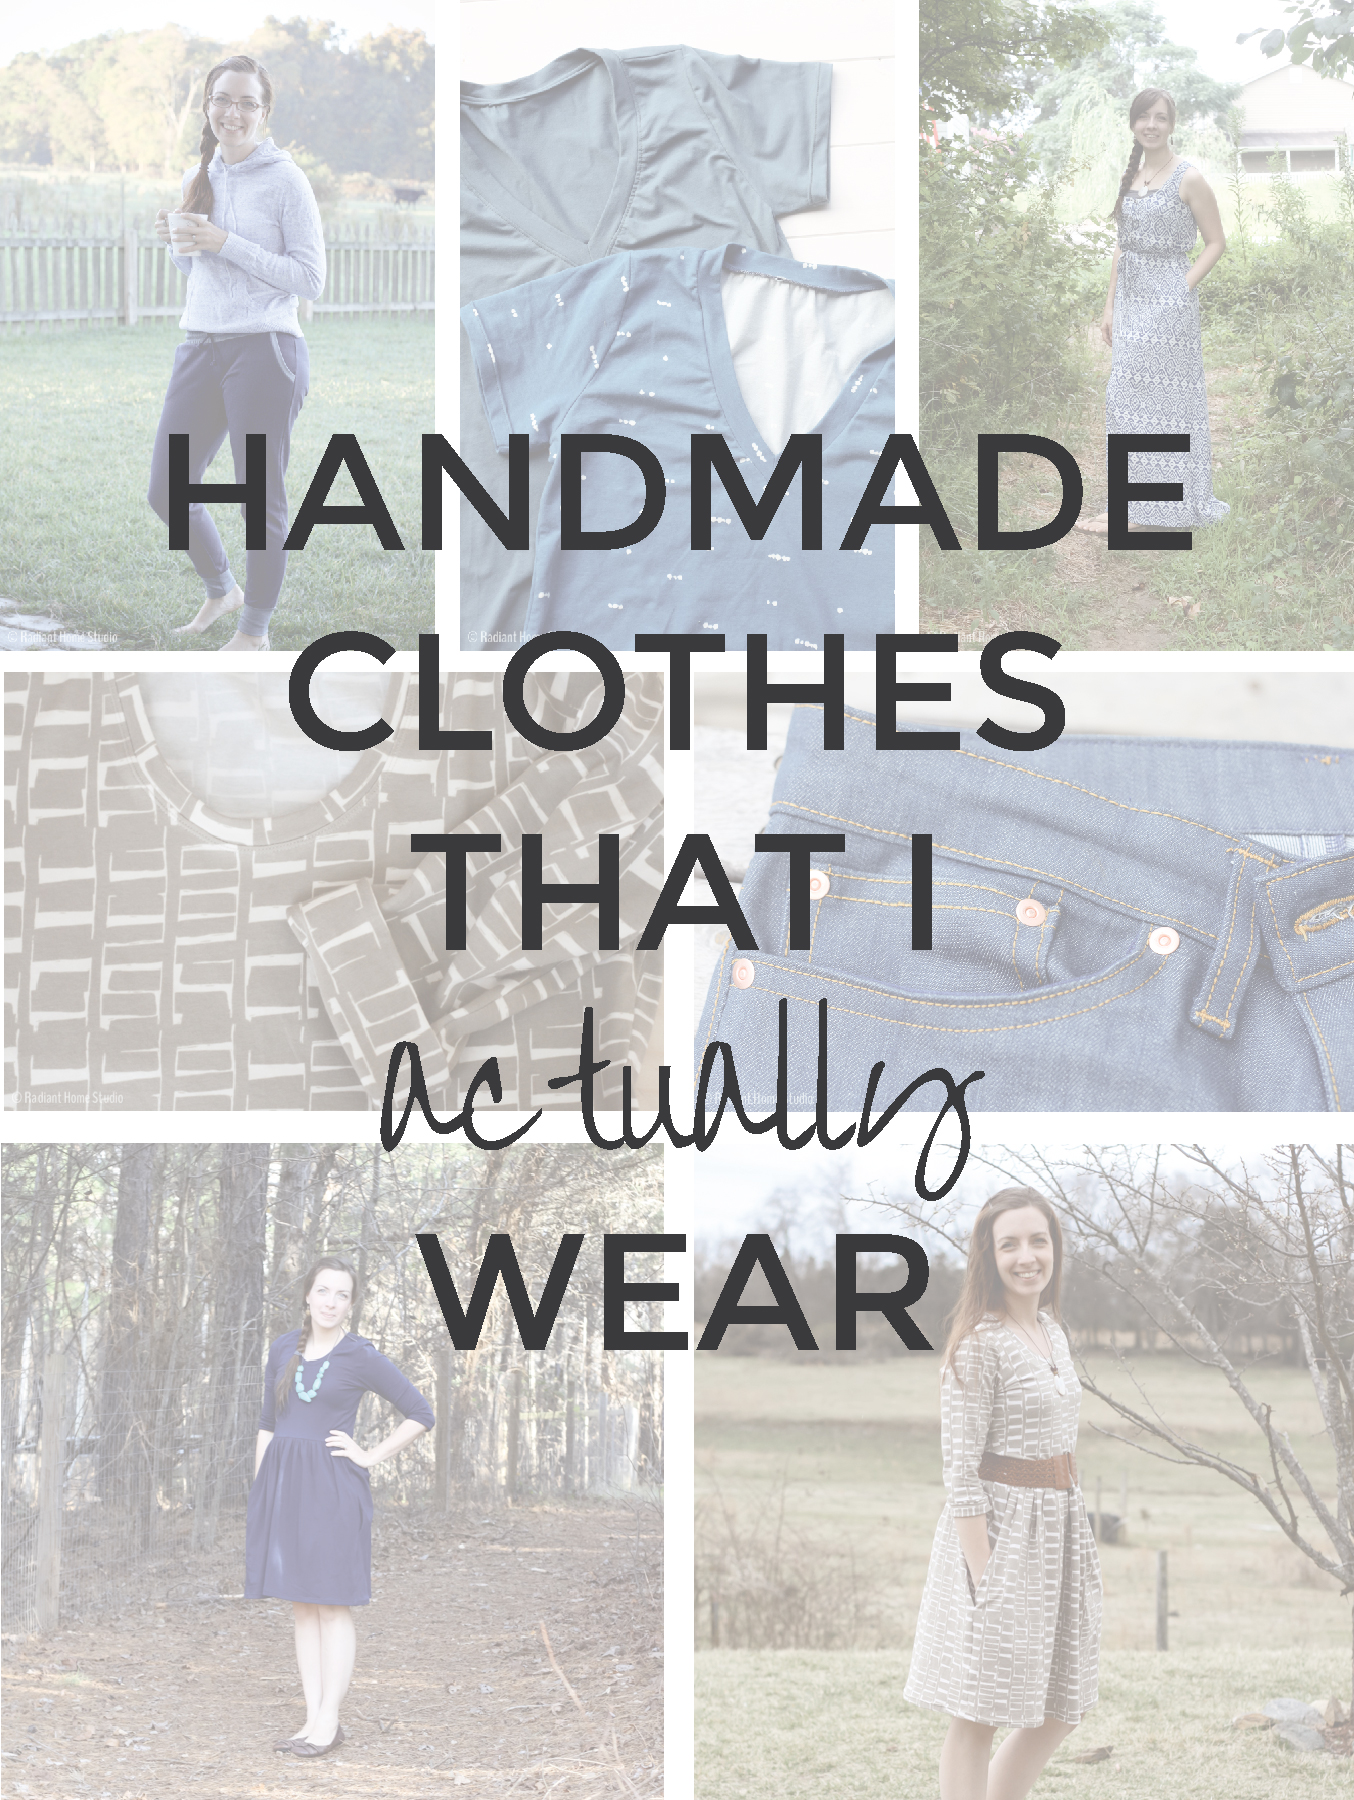 Handmade Clothes That I Actually Wear | Radiant Home Studio